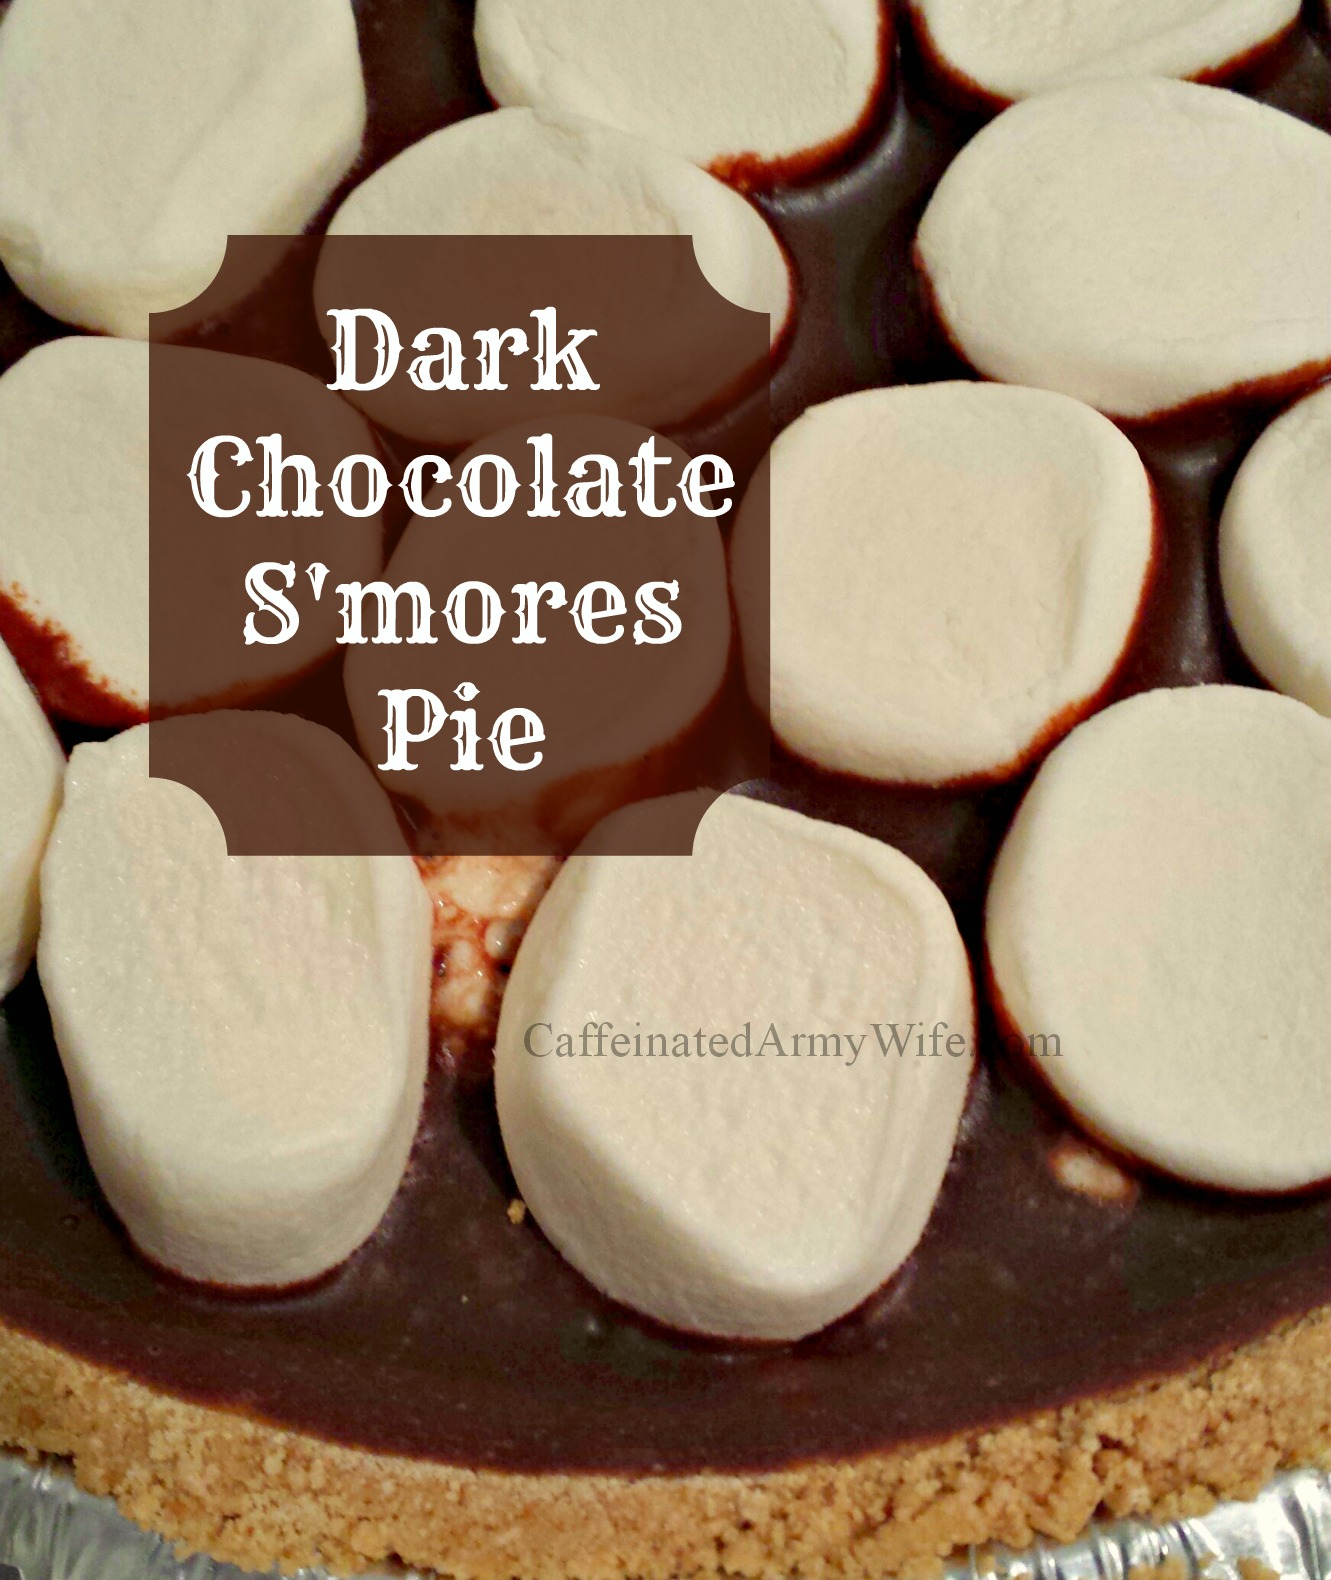 Dark Chocolate S'mores Pie Recipe - Caffeinated Army Wife